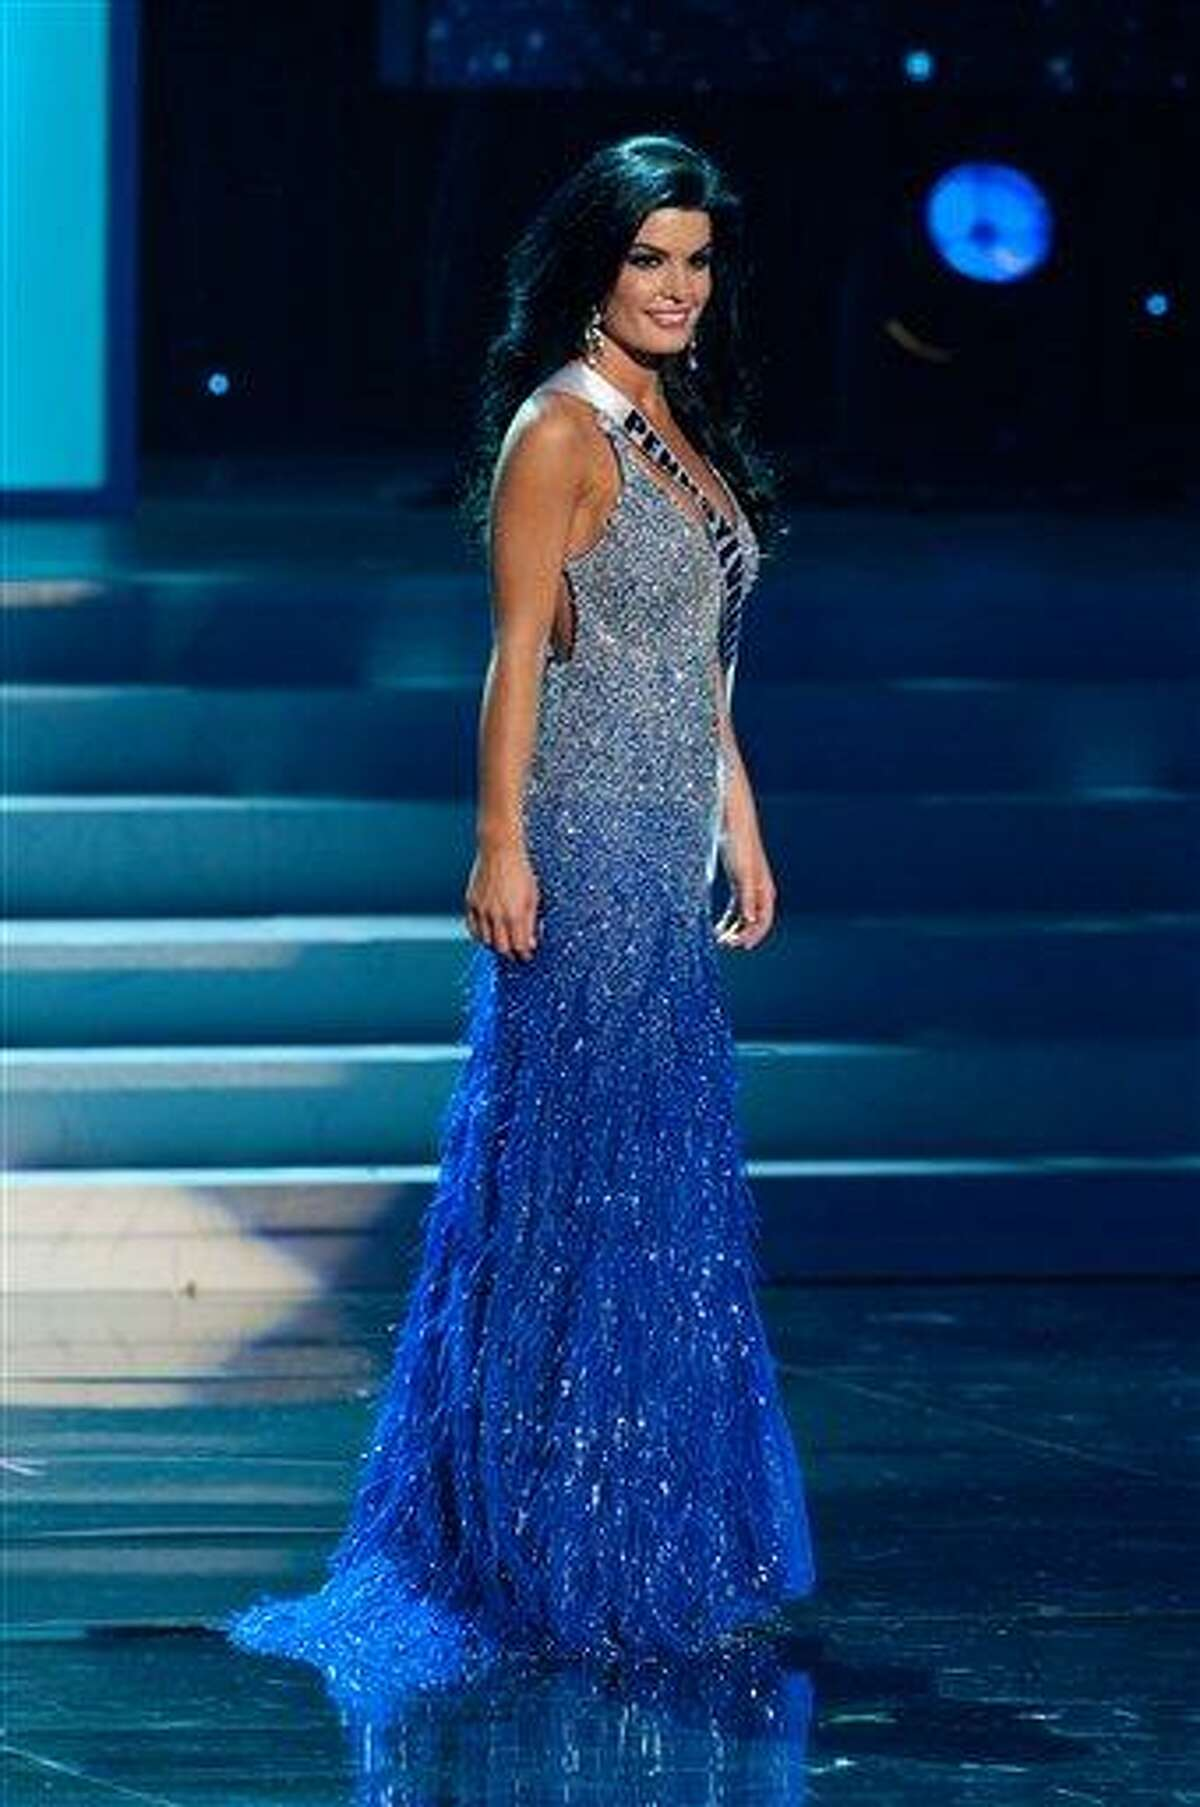 In this photo provided by the Miss Universe Organization, Miss Pennsylvania Sheena Monnin competes during the 2012 Miss USA Presentation Show on Wednesday in Las Vegas. Monnin resigned her crown claiming the contest is rigged, but according to organizers the beauty queen was upset over the decision to allow transgender contestants to enter. A posting on Monnin's Facebook page claims another contestant learned the names of the top 5 finishers on Sunday morning, hours before the show was broadcast. Associated Press